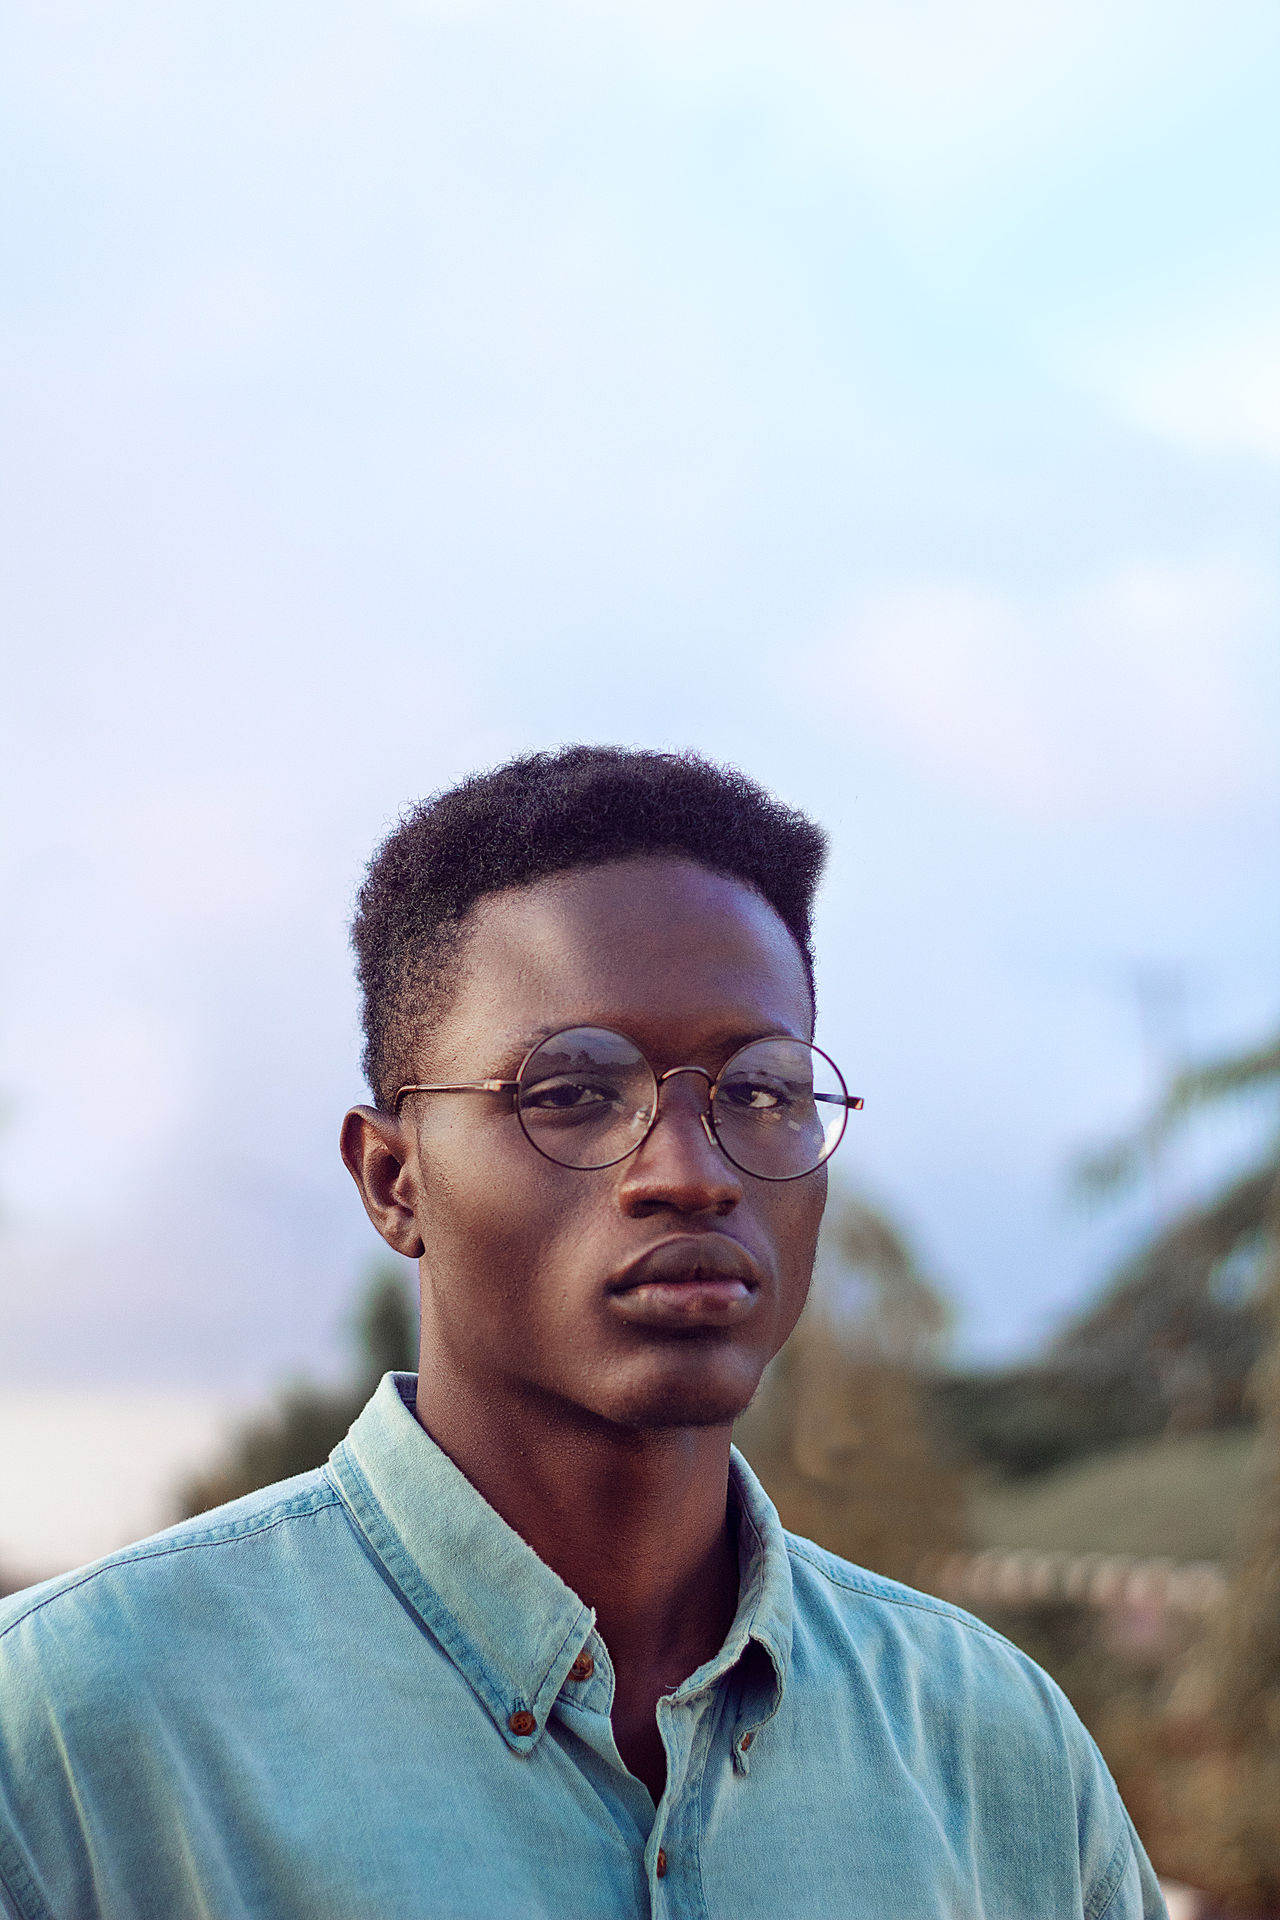 Portrait of young man against sky